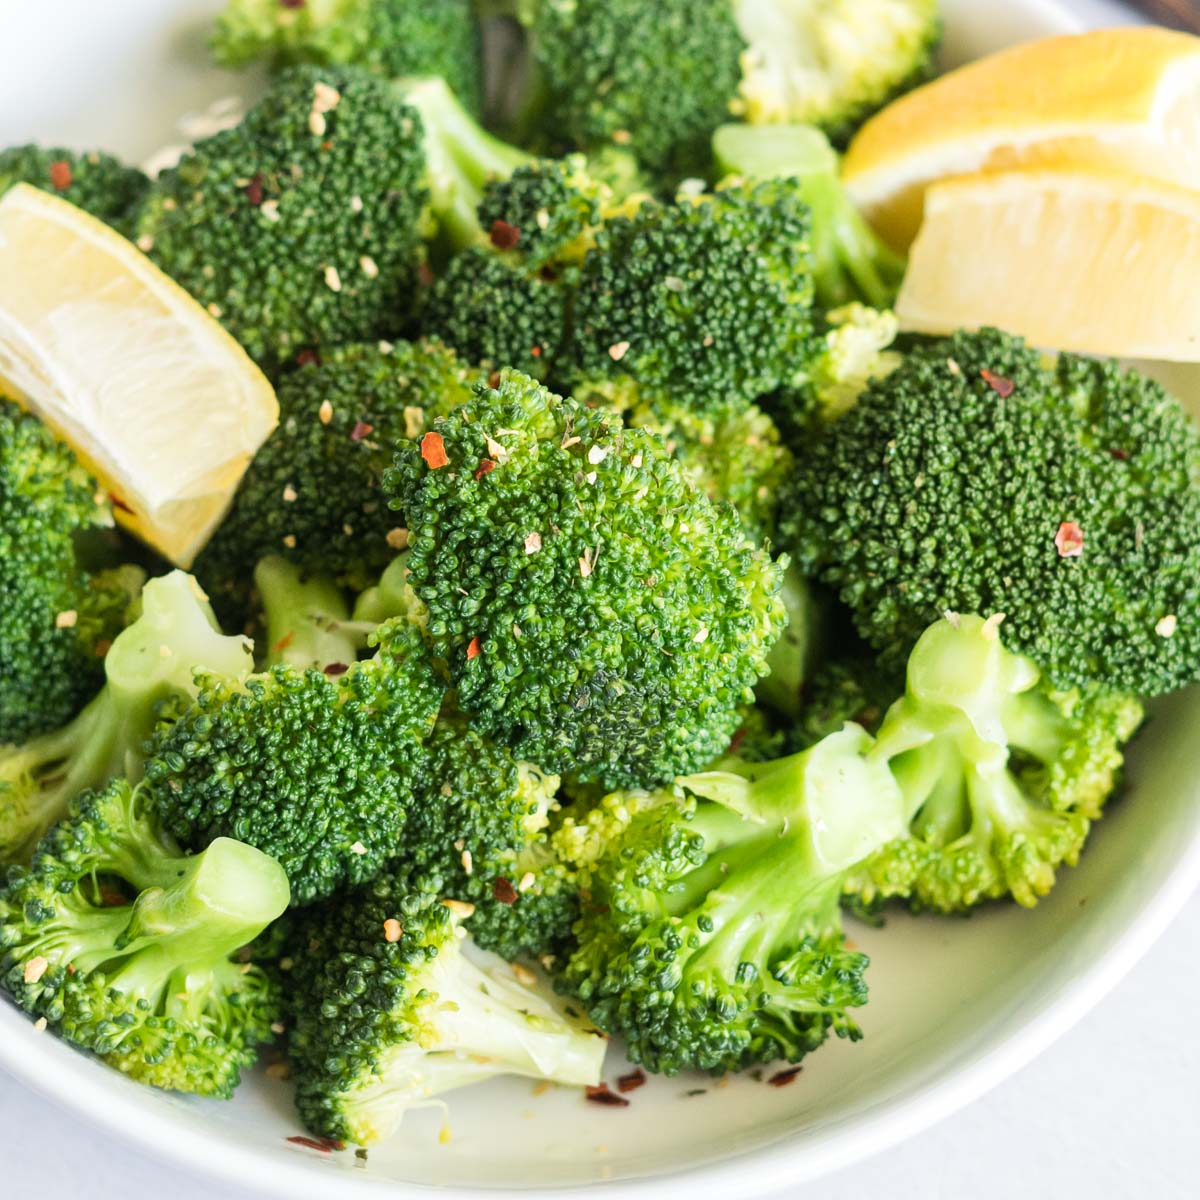 Steamed broccoli in a bowl with lemon wedges and chili flakes.